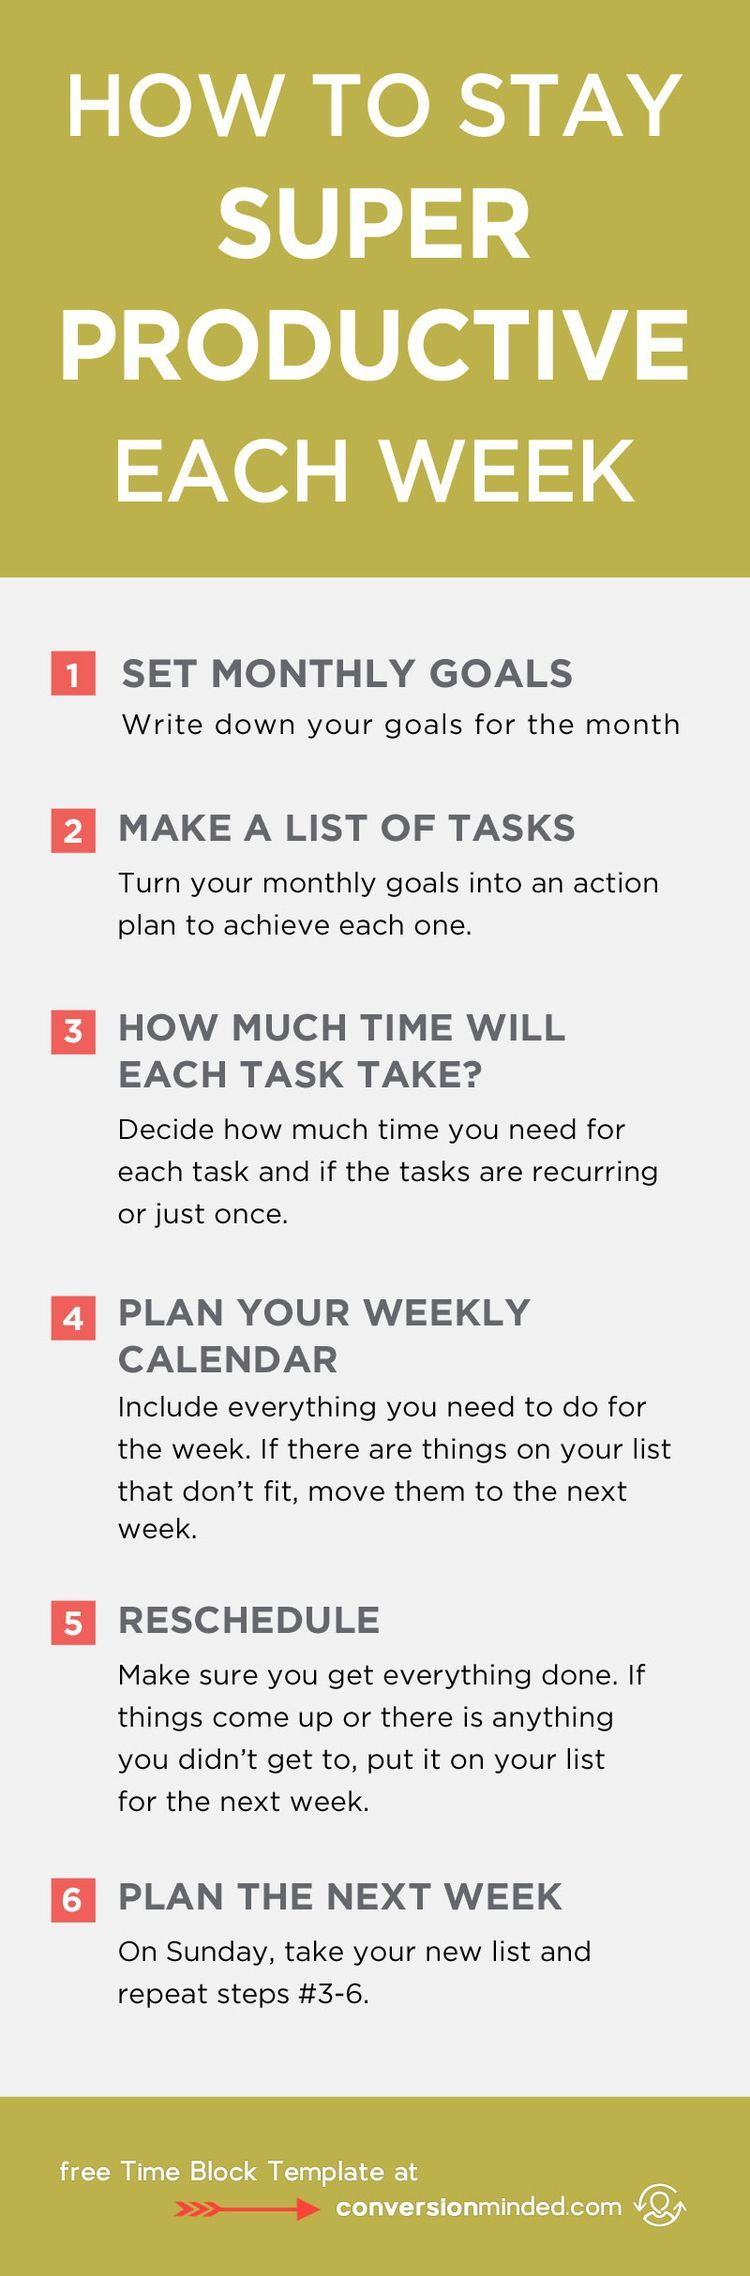 How to Stay Super Productive Each Week | Ready to turn your to-do list into an action plan? This guide for entrepreneurs and bloggers will help you prioritize goals and tasks so you know exactly what you need to do each day to reach your goals. It also includes my secret productivity weapon – the Time Block Template! Click through to see all the tips! #entrepreneur #followback #onlinebusiness #startup